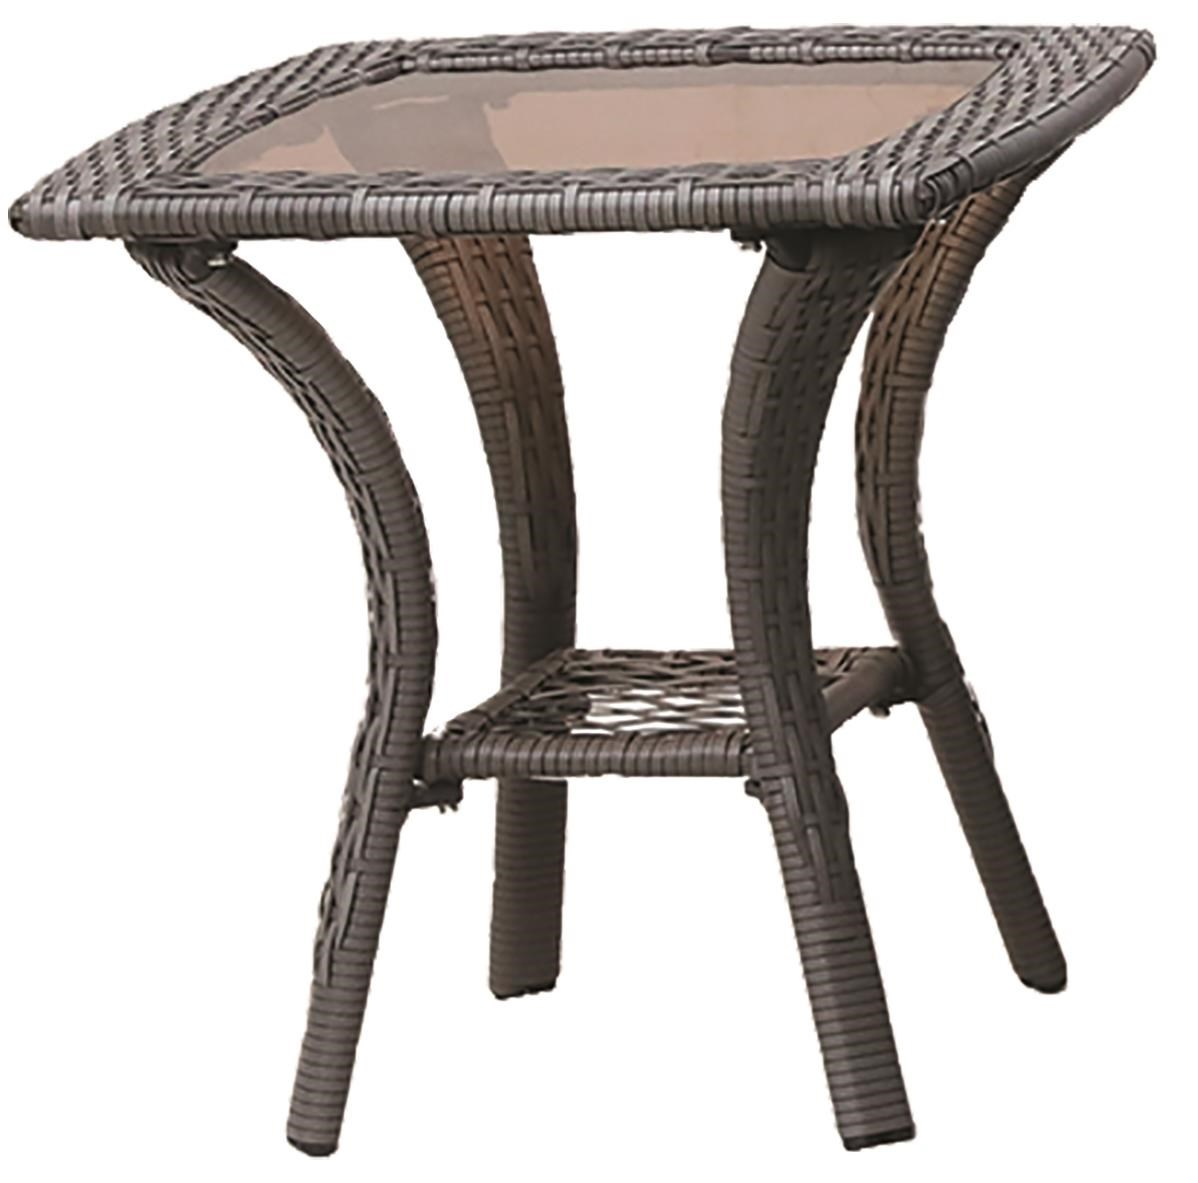 Essen Outdoor End Table by GatherCraft at Darvin Furniture